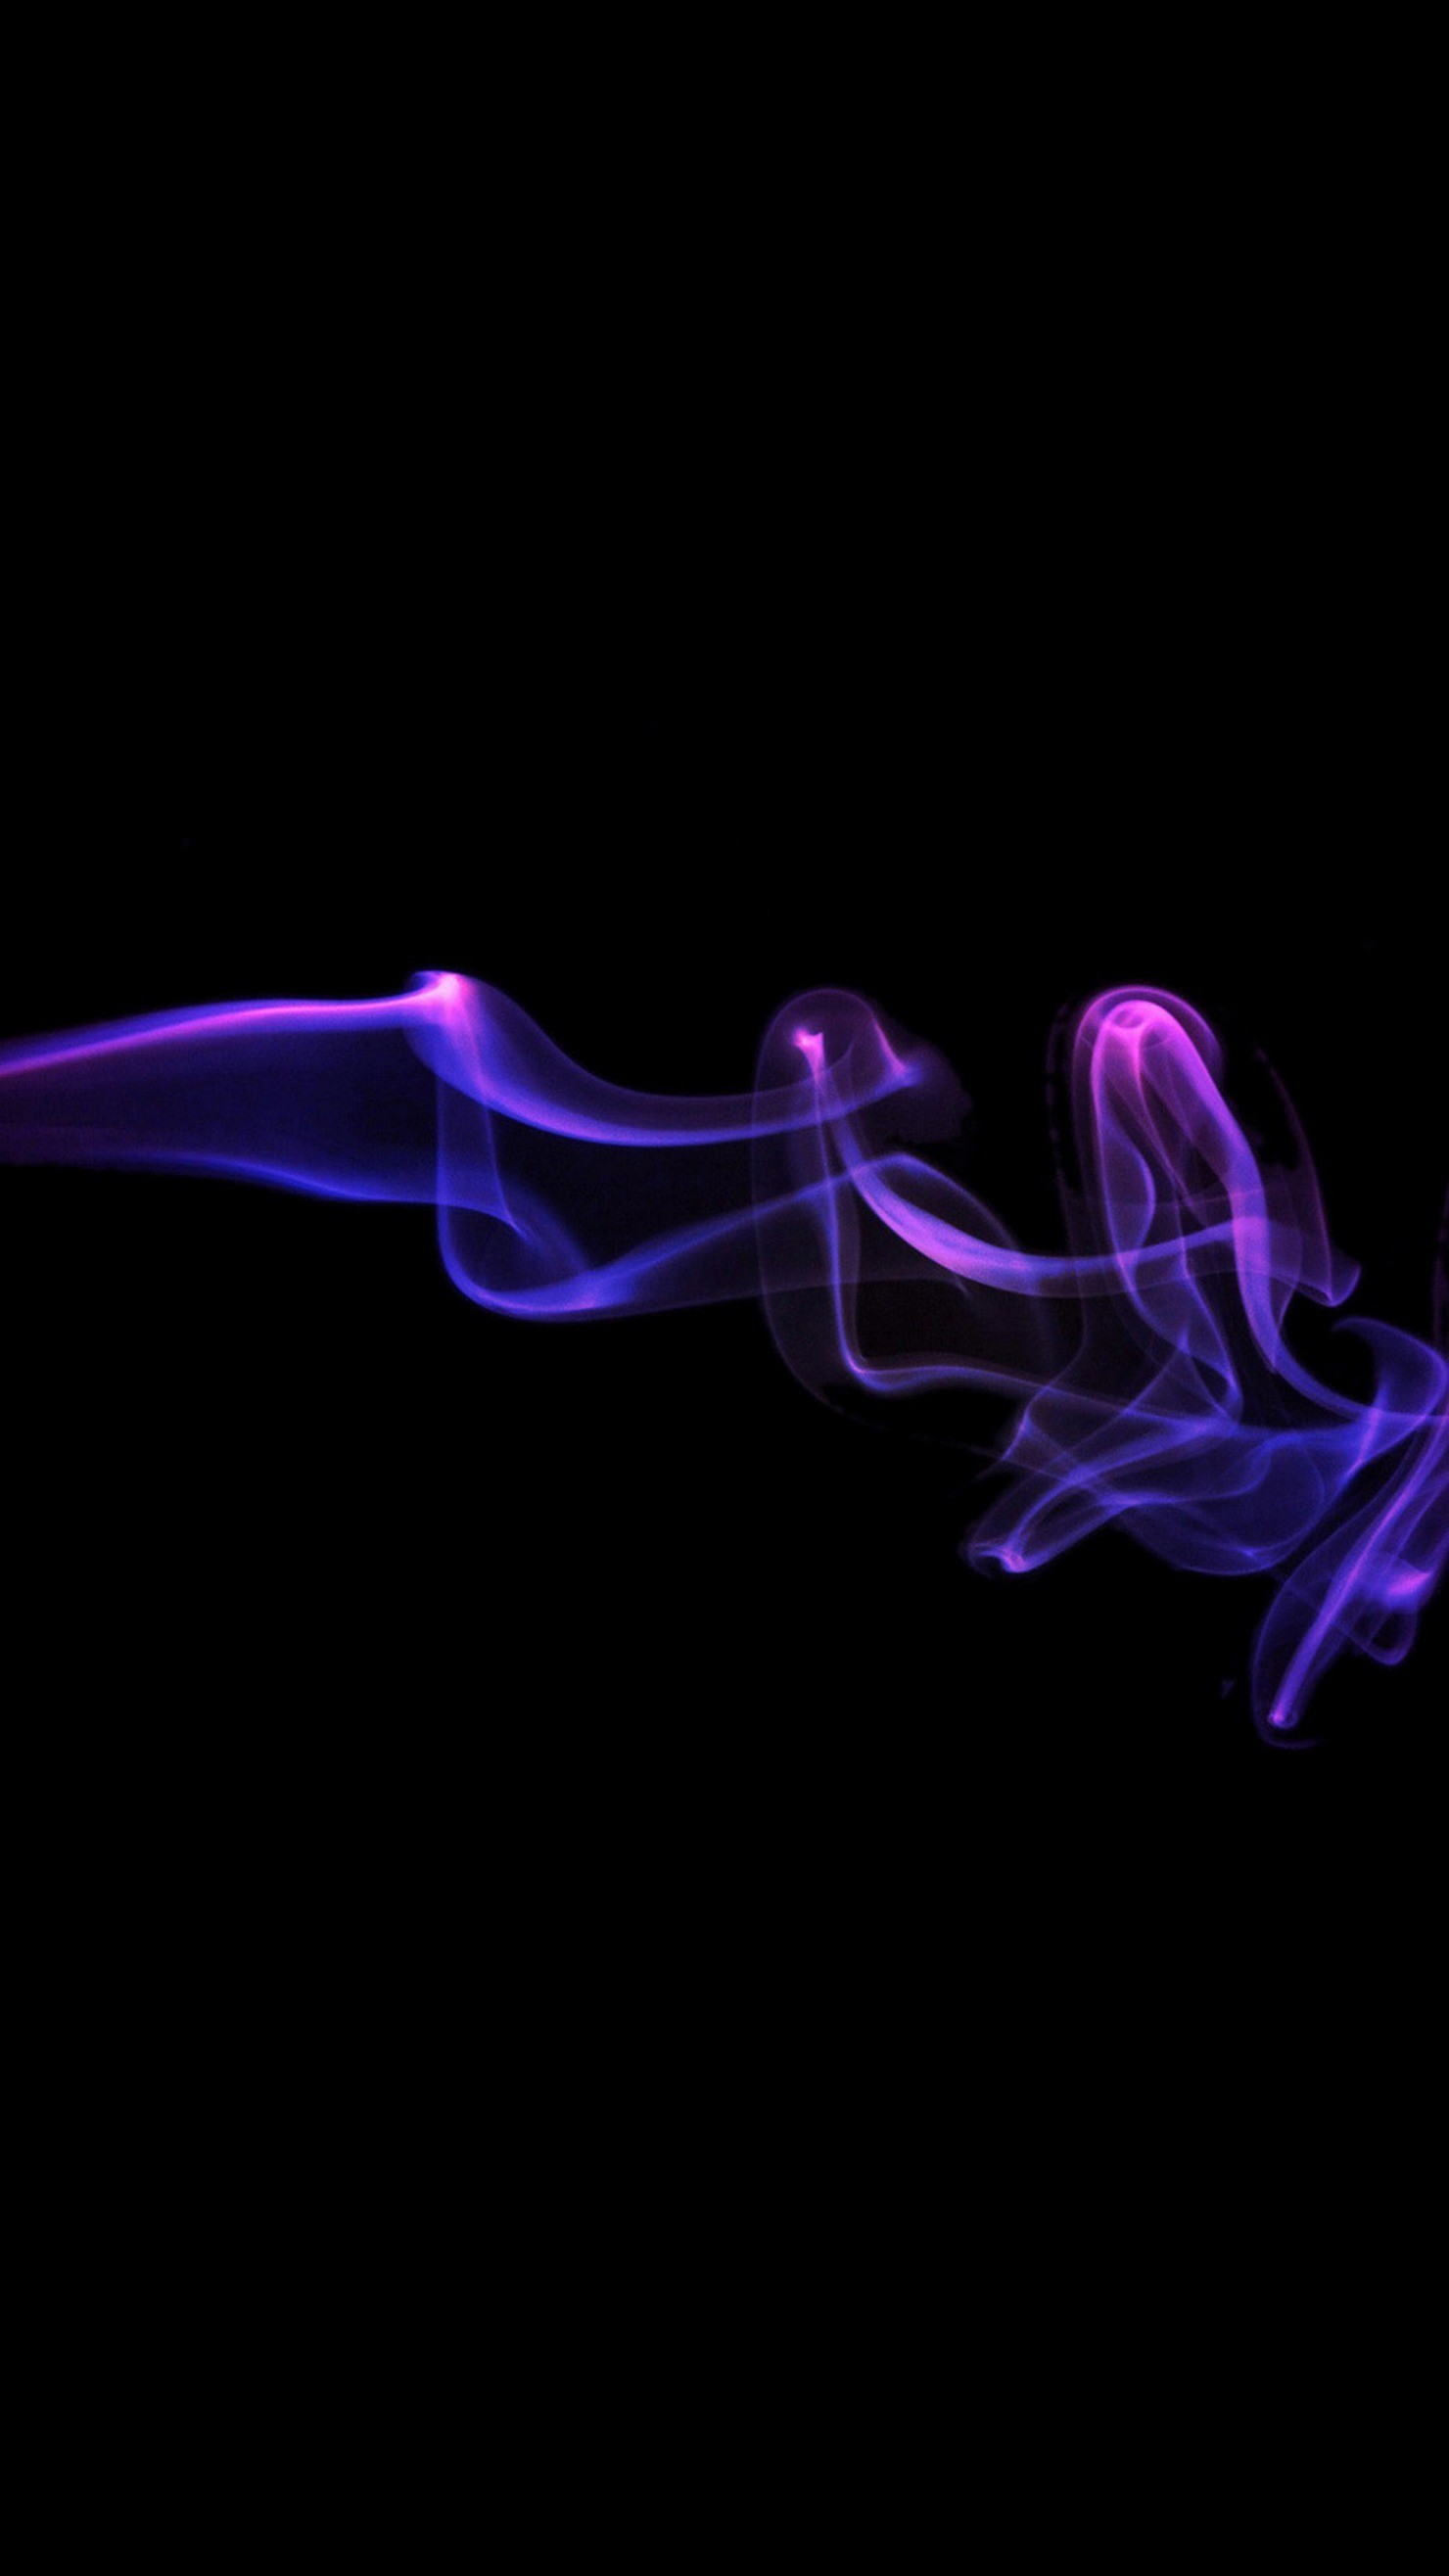 Smoke Wallpaper Hd For Iphone 76 Images